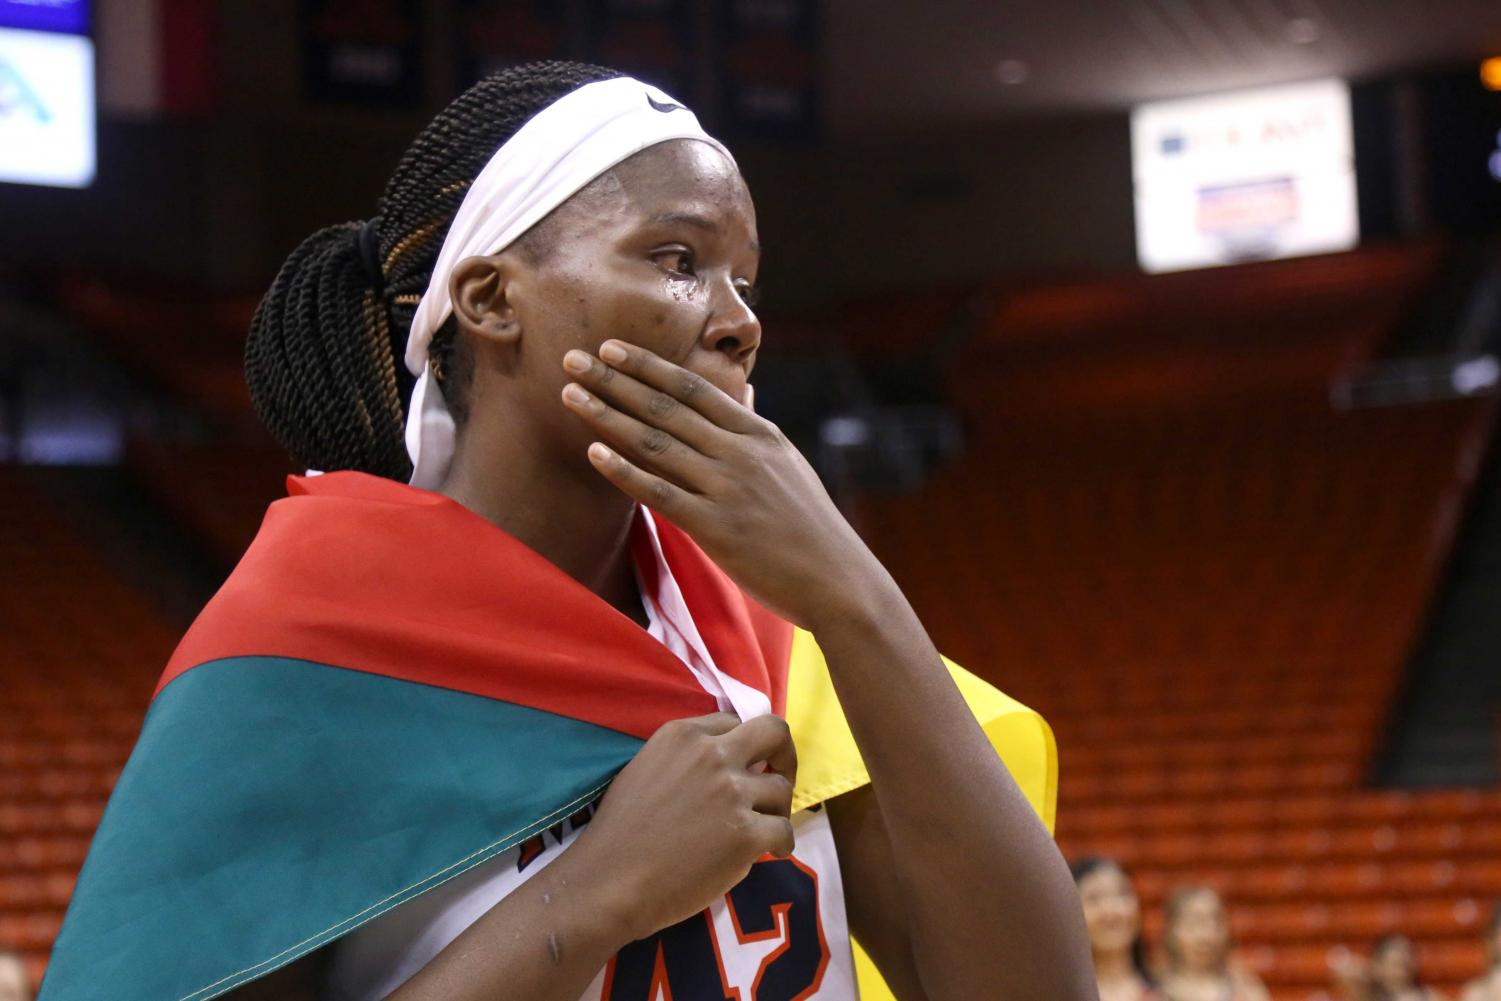 Senior+forward+Tamara+Seda+sheds+tears+while+being+honored+before+the+game+on+Saturday%2C+March+3+at+the+Don+Haskins+Center.